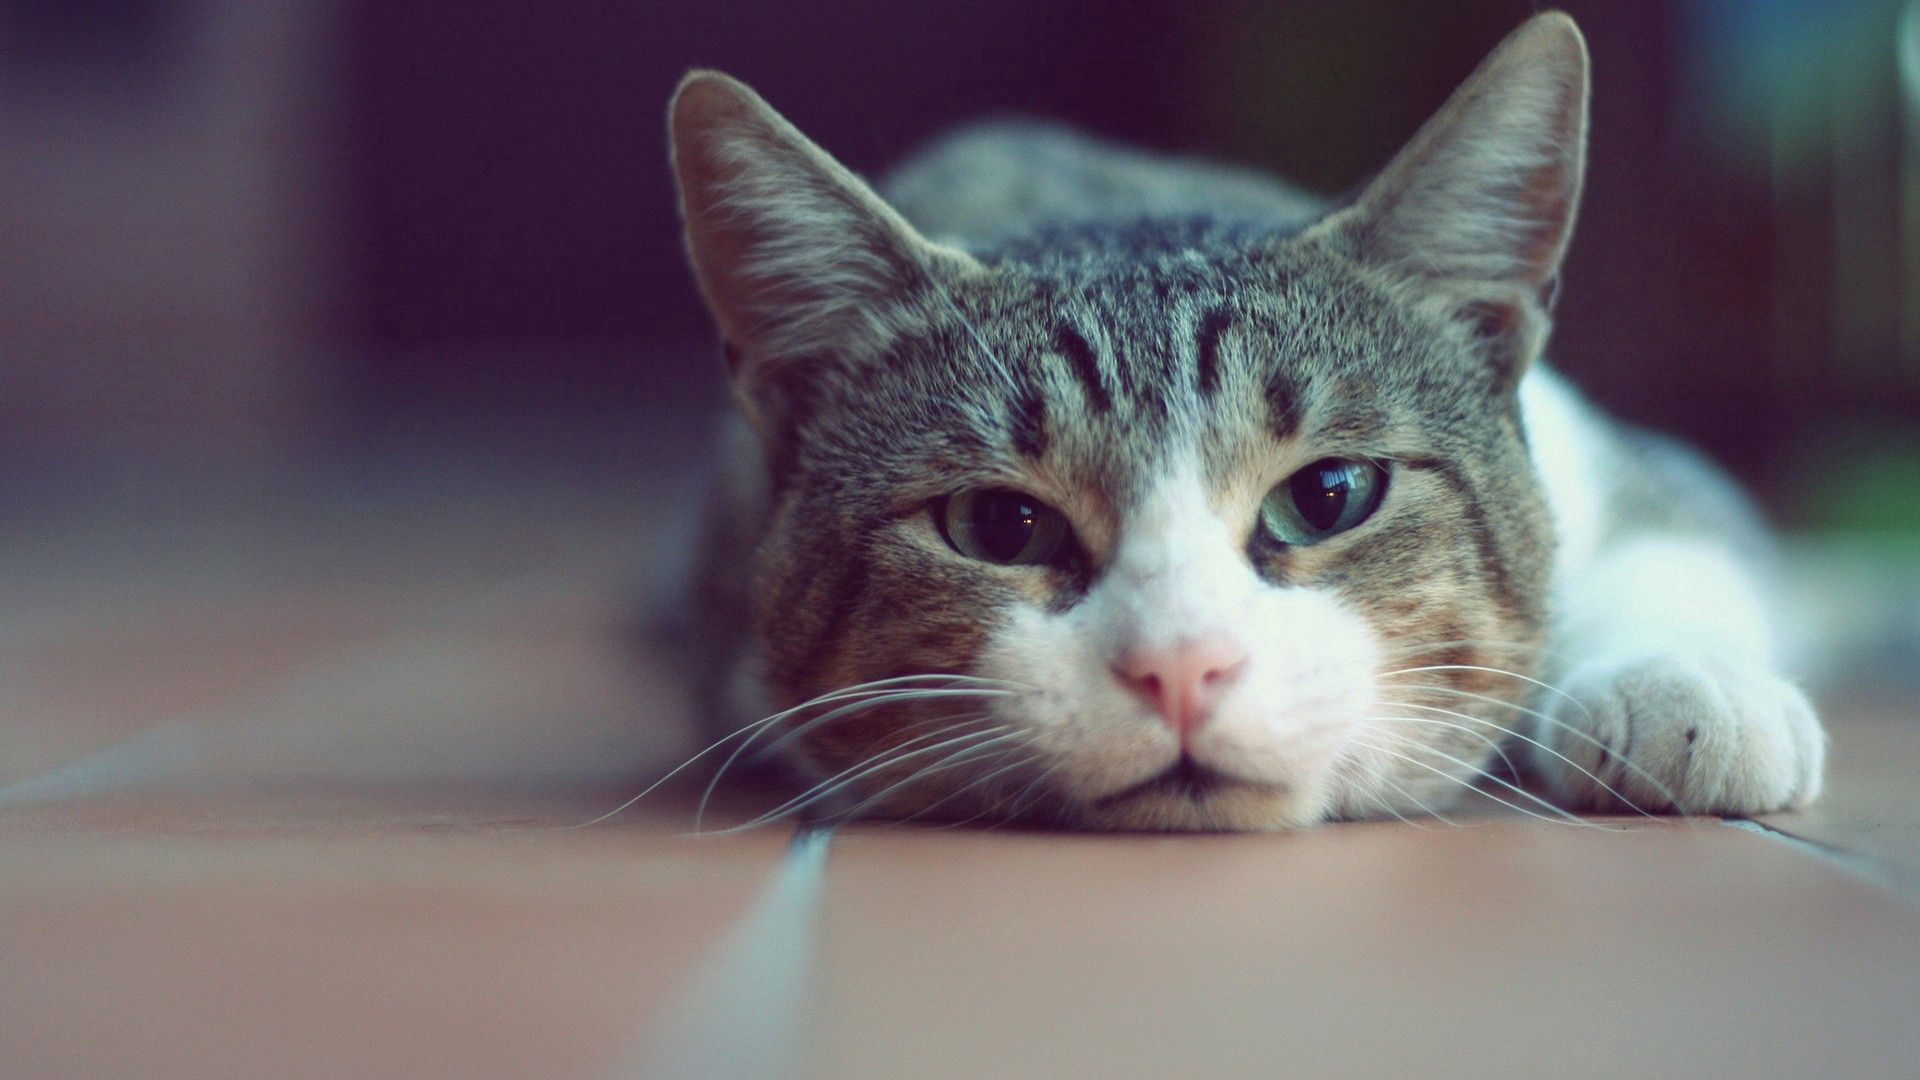 93925 download wallpaper Animals, Cat, To Lie Down, Lie, Muzzle, Relaxation, Rest screensavers and pictures for free